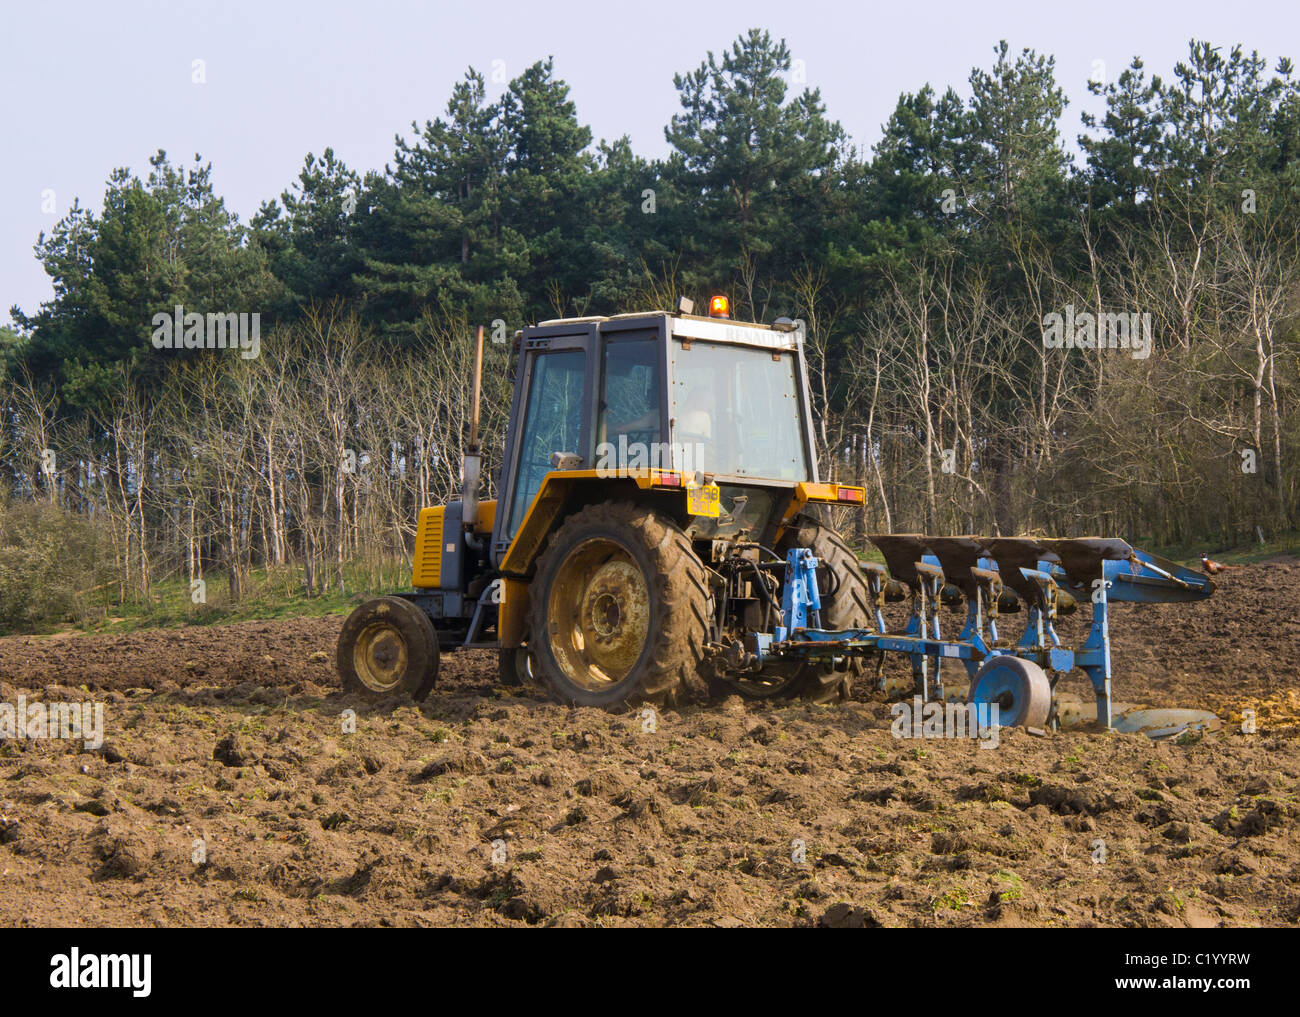 Man in a small tractor ploughing a field with a plough. - Stock Image